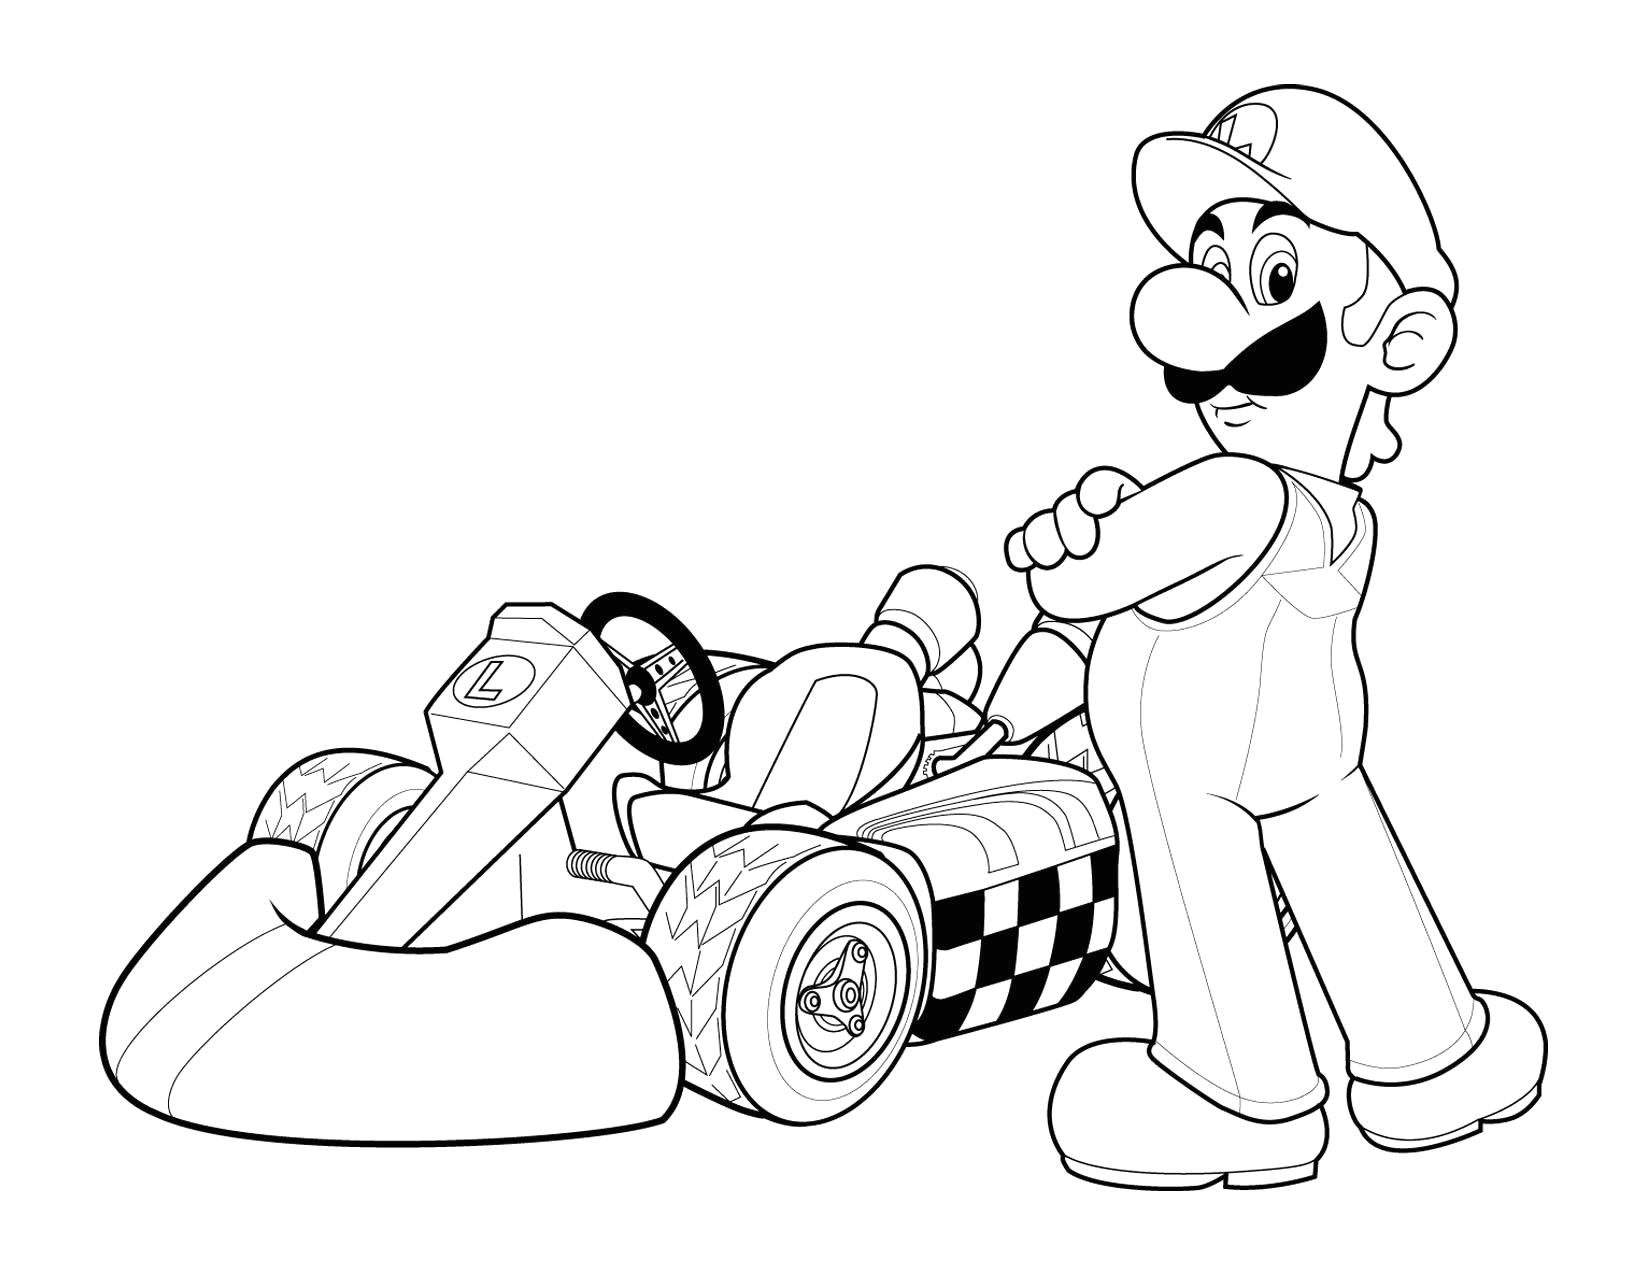 Mario Kart Coloring Pages for Kids Printable Mario Kart Characters Coloring Pages Coloring Home